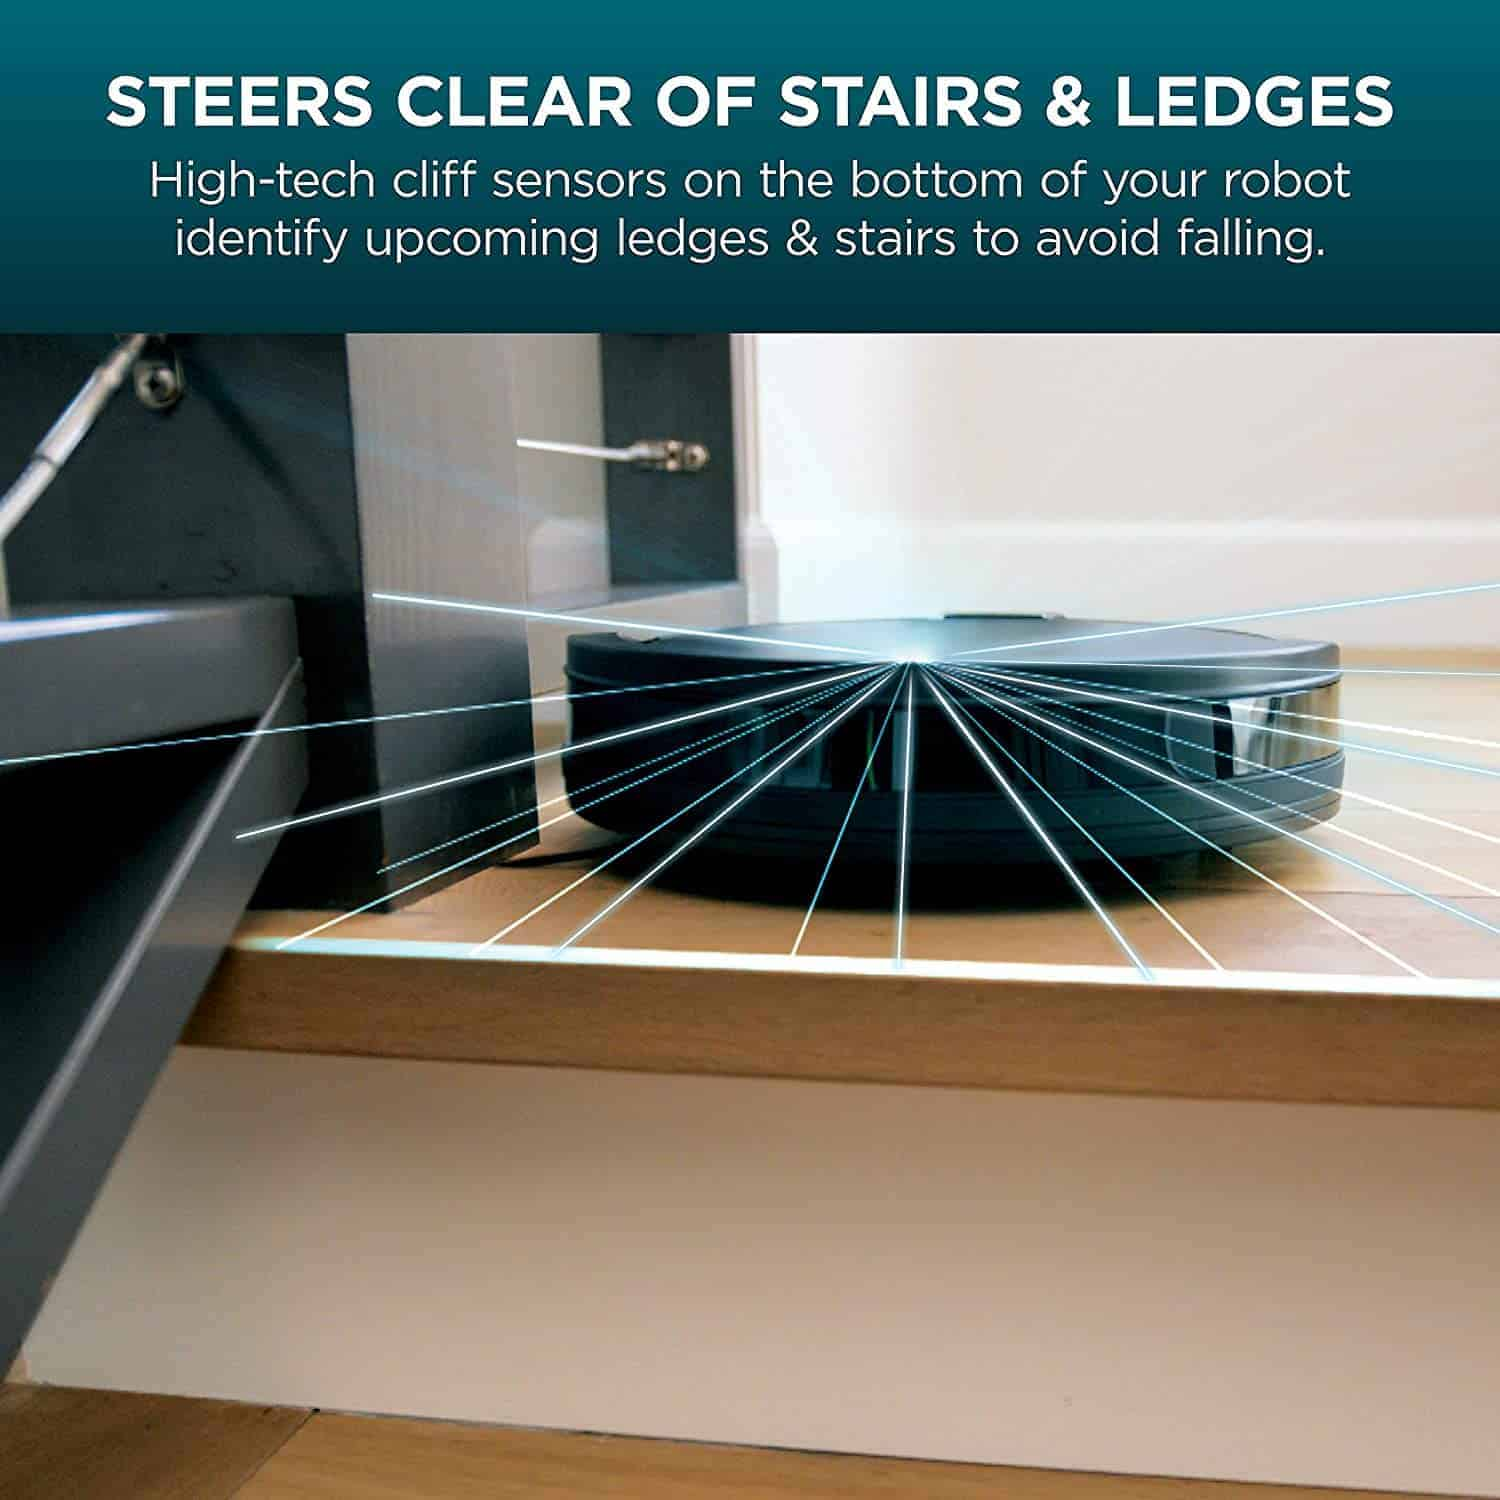 The Best robot vacuum for stairs: Shark ION RV750